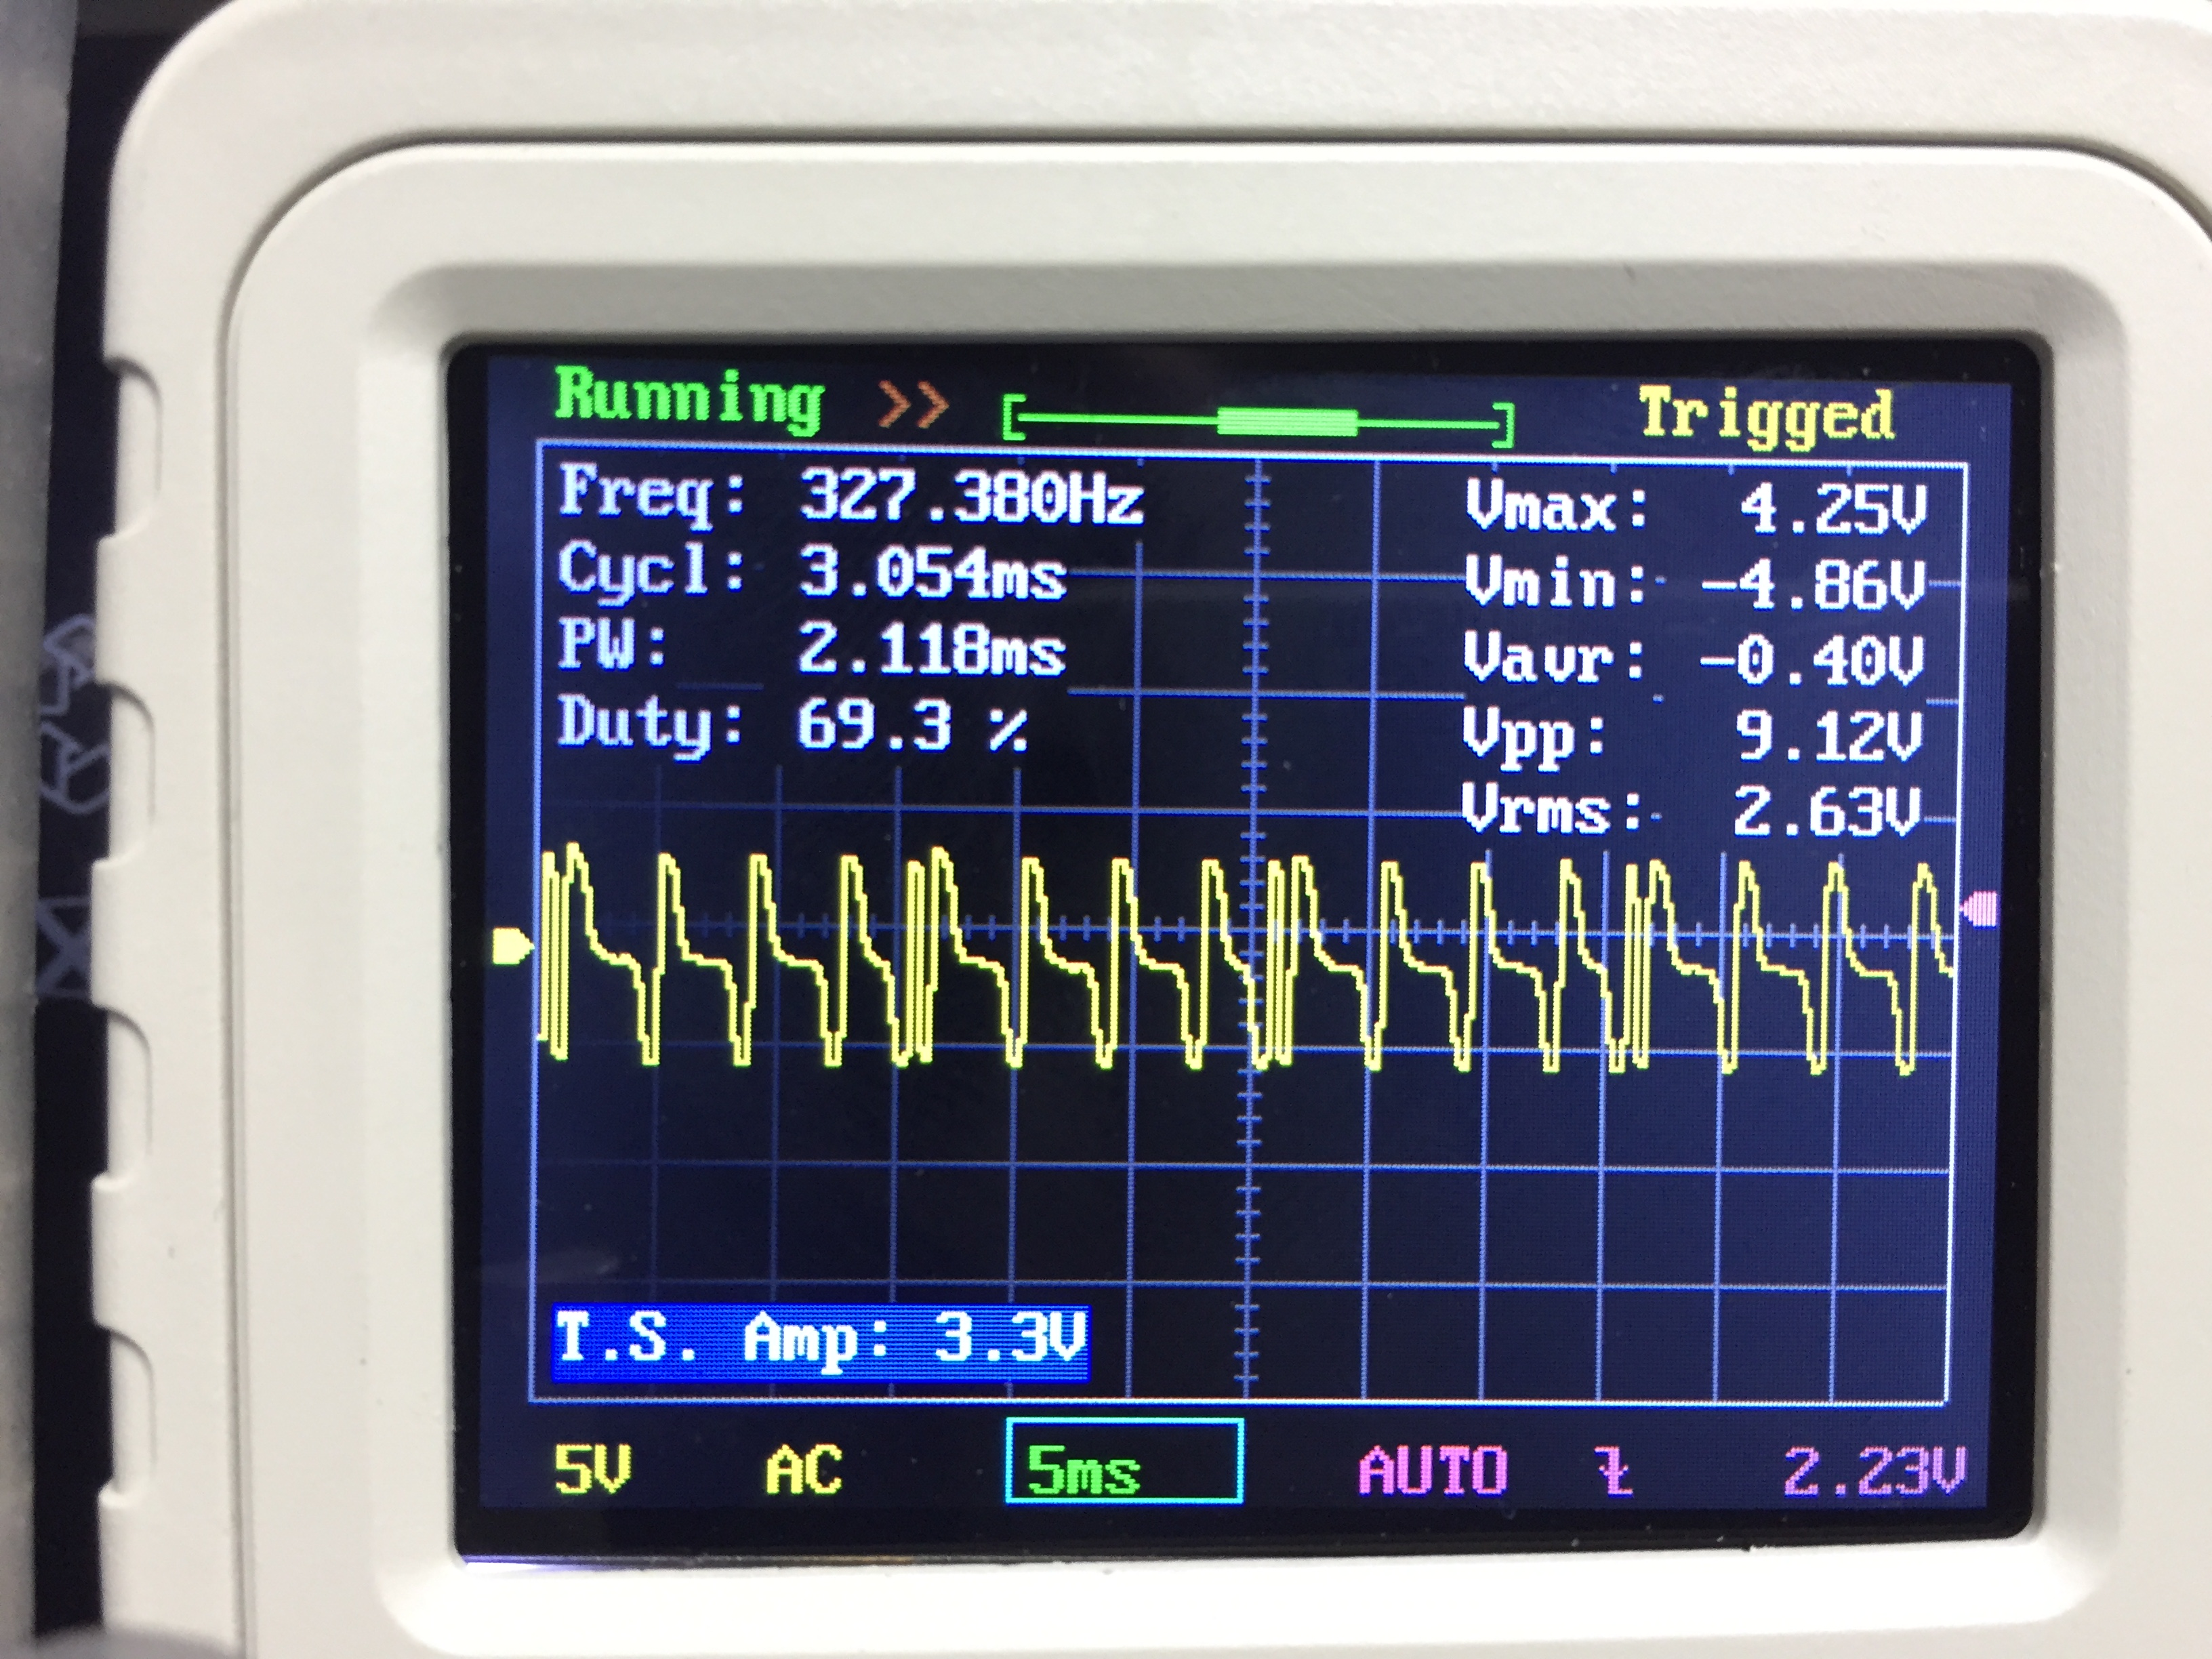 Pulse Count From Engine Pickup Coil Avr Freaks Lm324 Comparator Circuit Http Wwwcircuitsonlinenet Forum View See Here 1500rpm 3000rpm 9000rpm